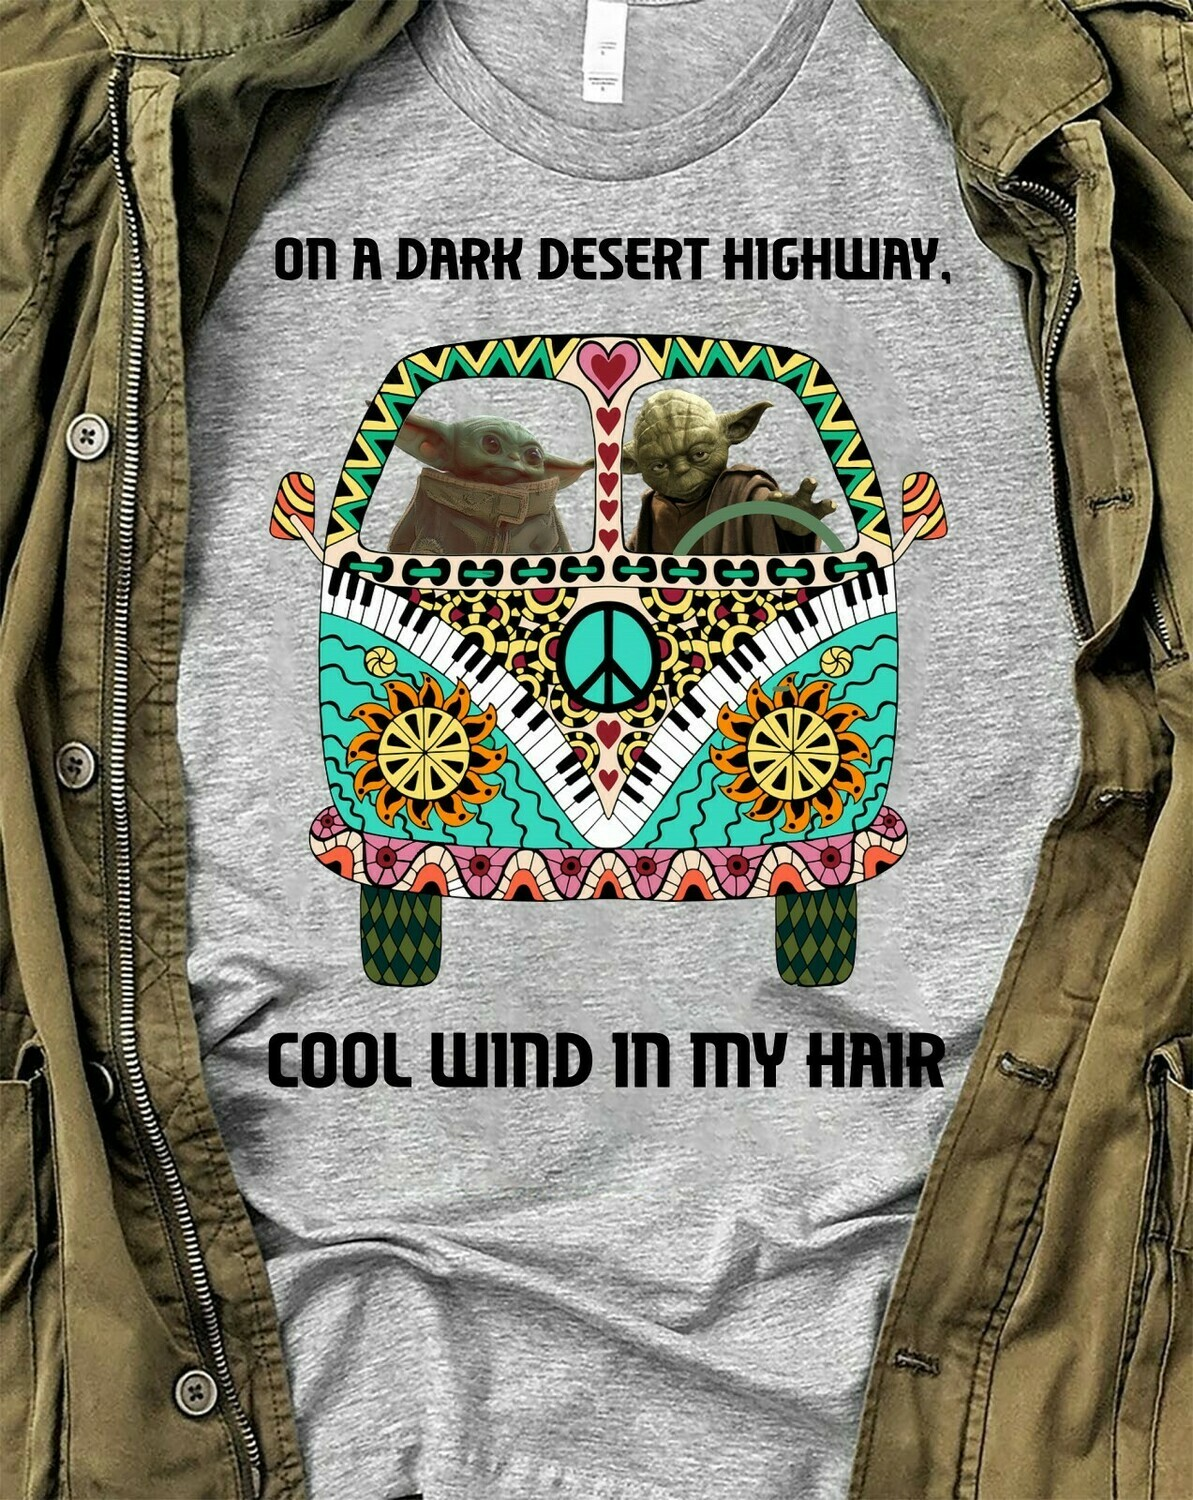 On a dark desert highway cool wind in my hair Baby Yoda and Yoda Hippie in Orlando,Hippy Hippy Boomers child T shirt Long Sleeve Sweatshirt Hoodie Jolly Family Gifts